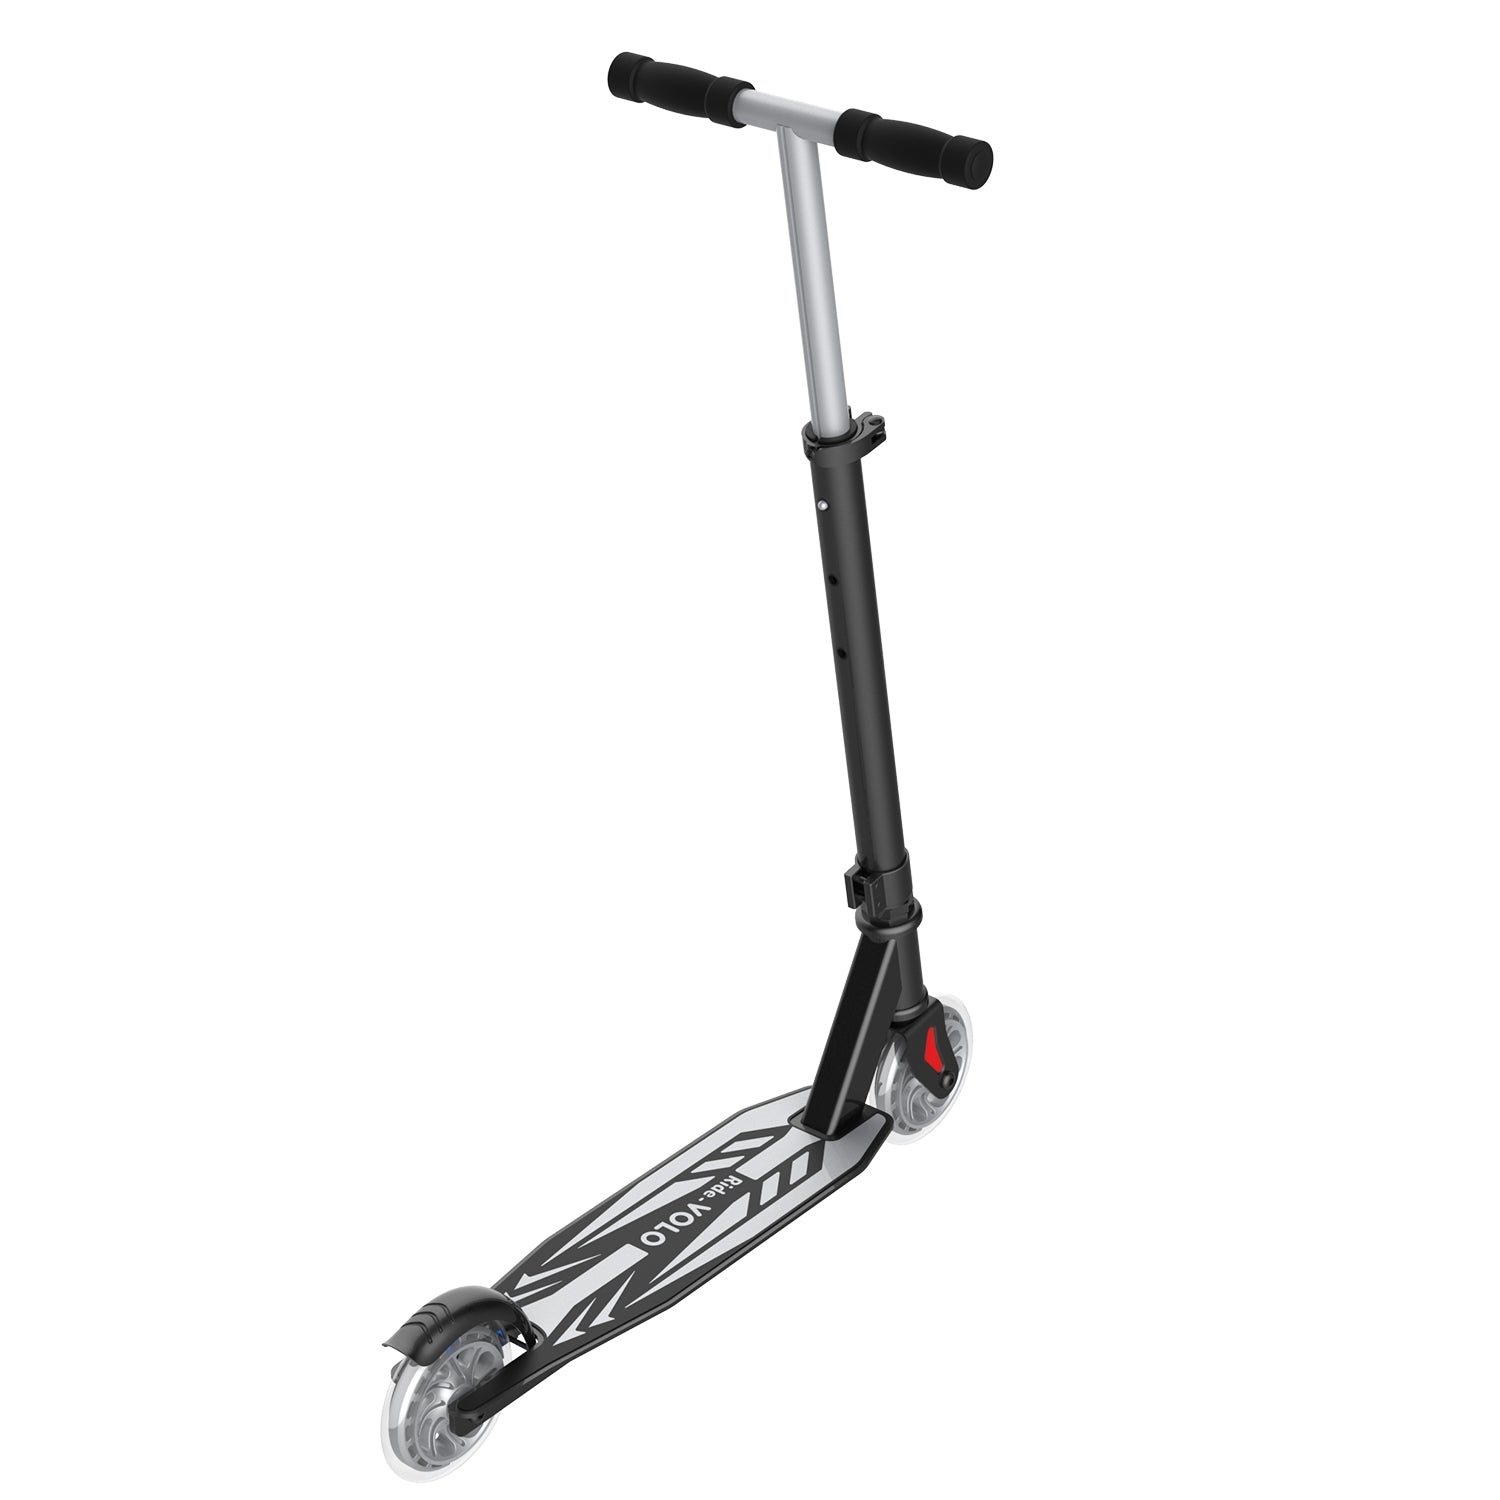 Gray k05 scooter away image